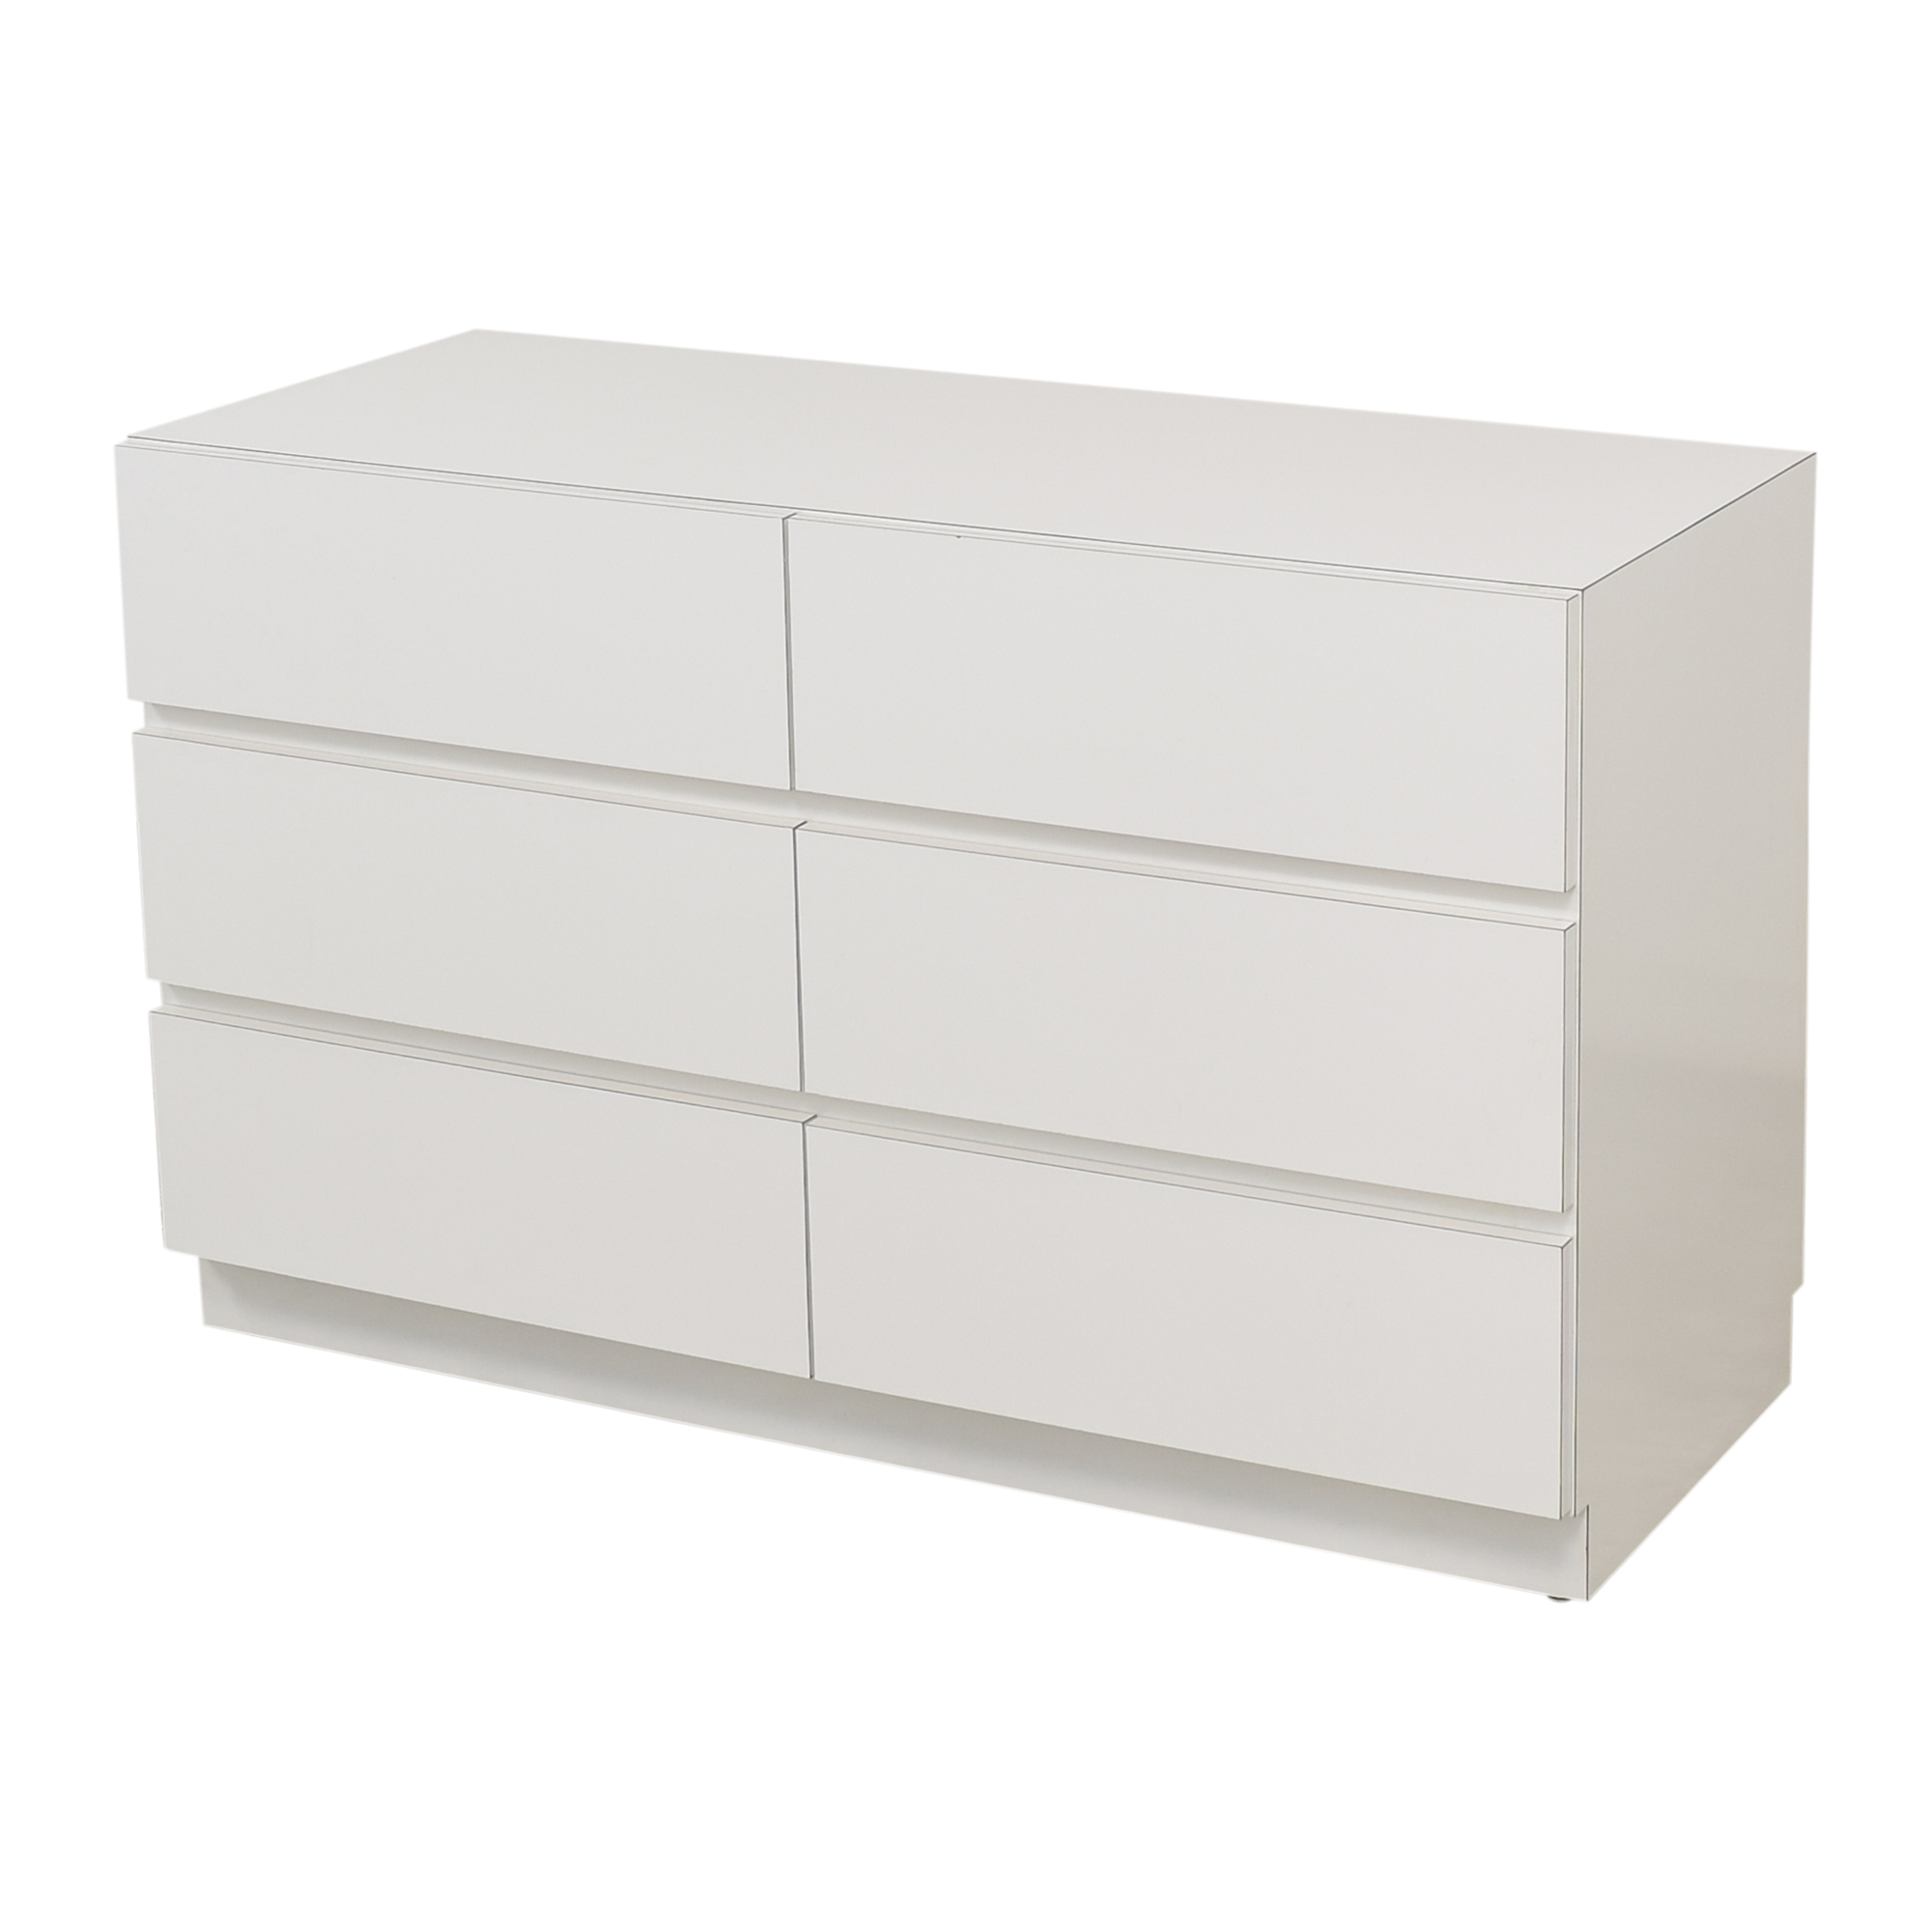 buy  Modern Six Drawer Dresser online